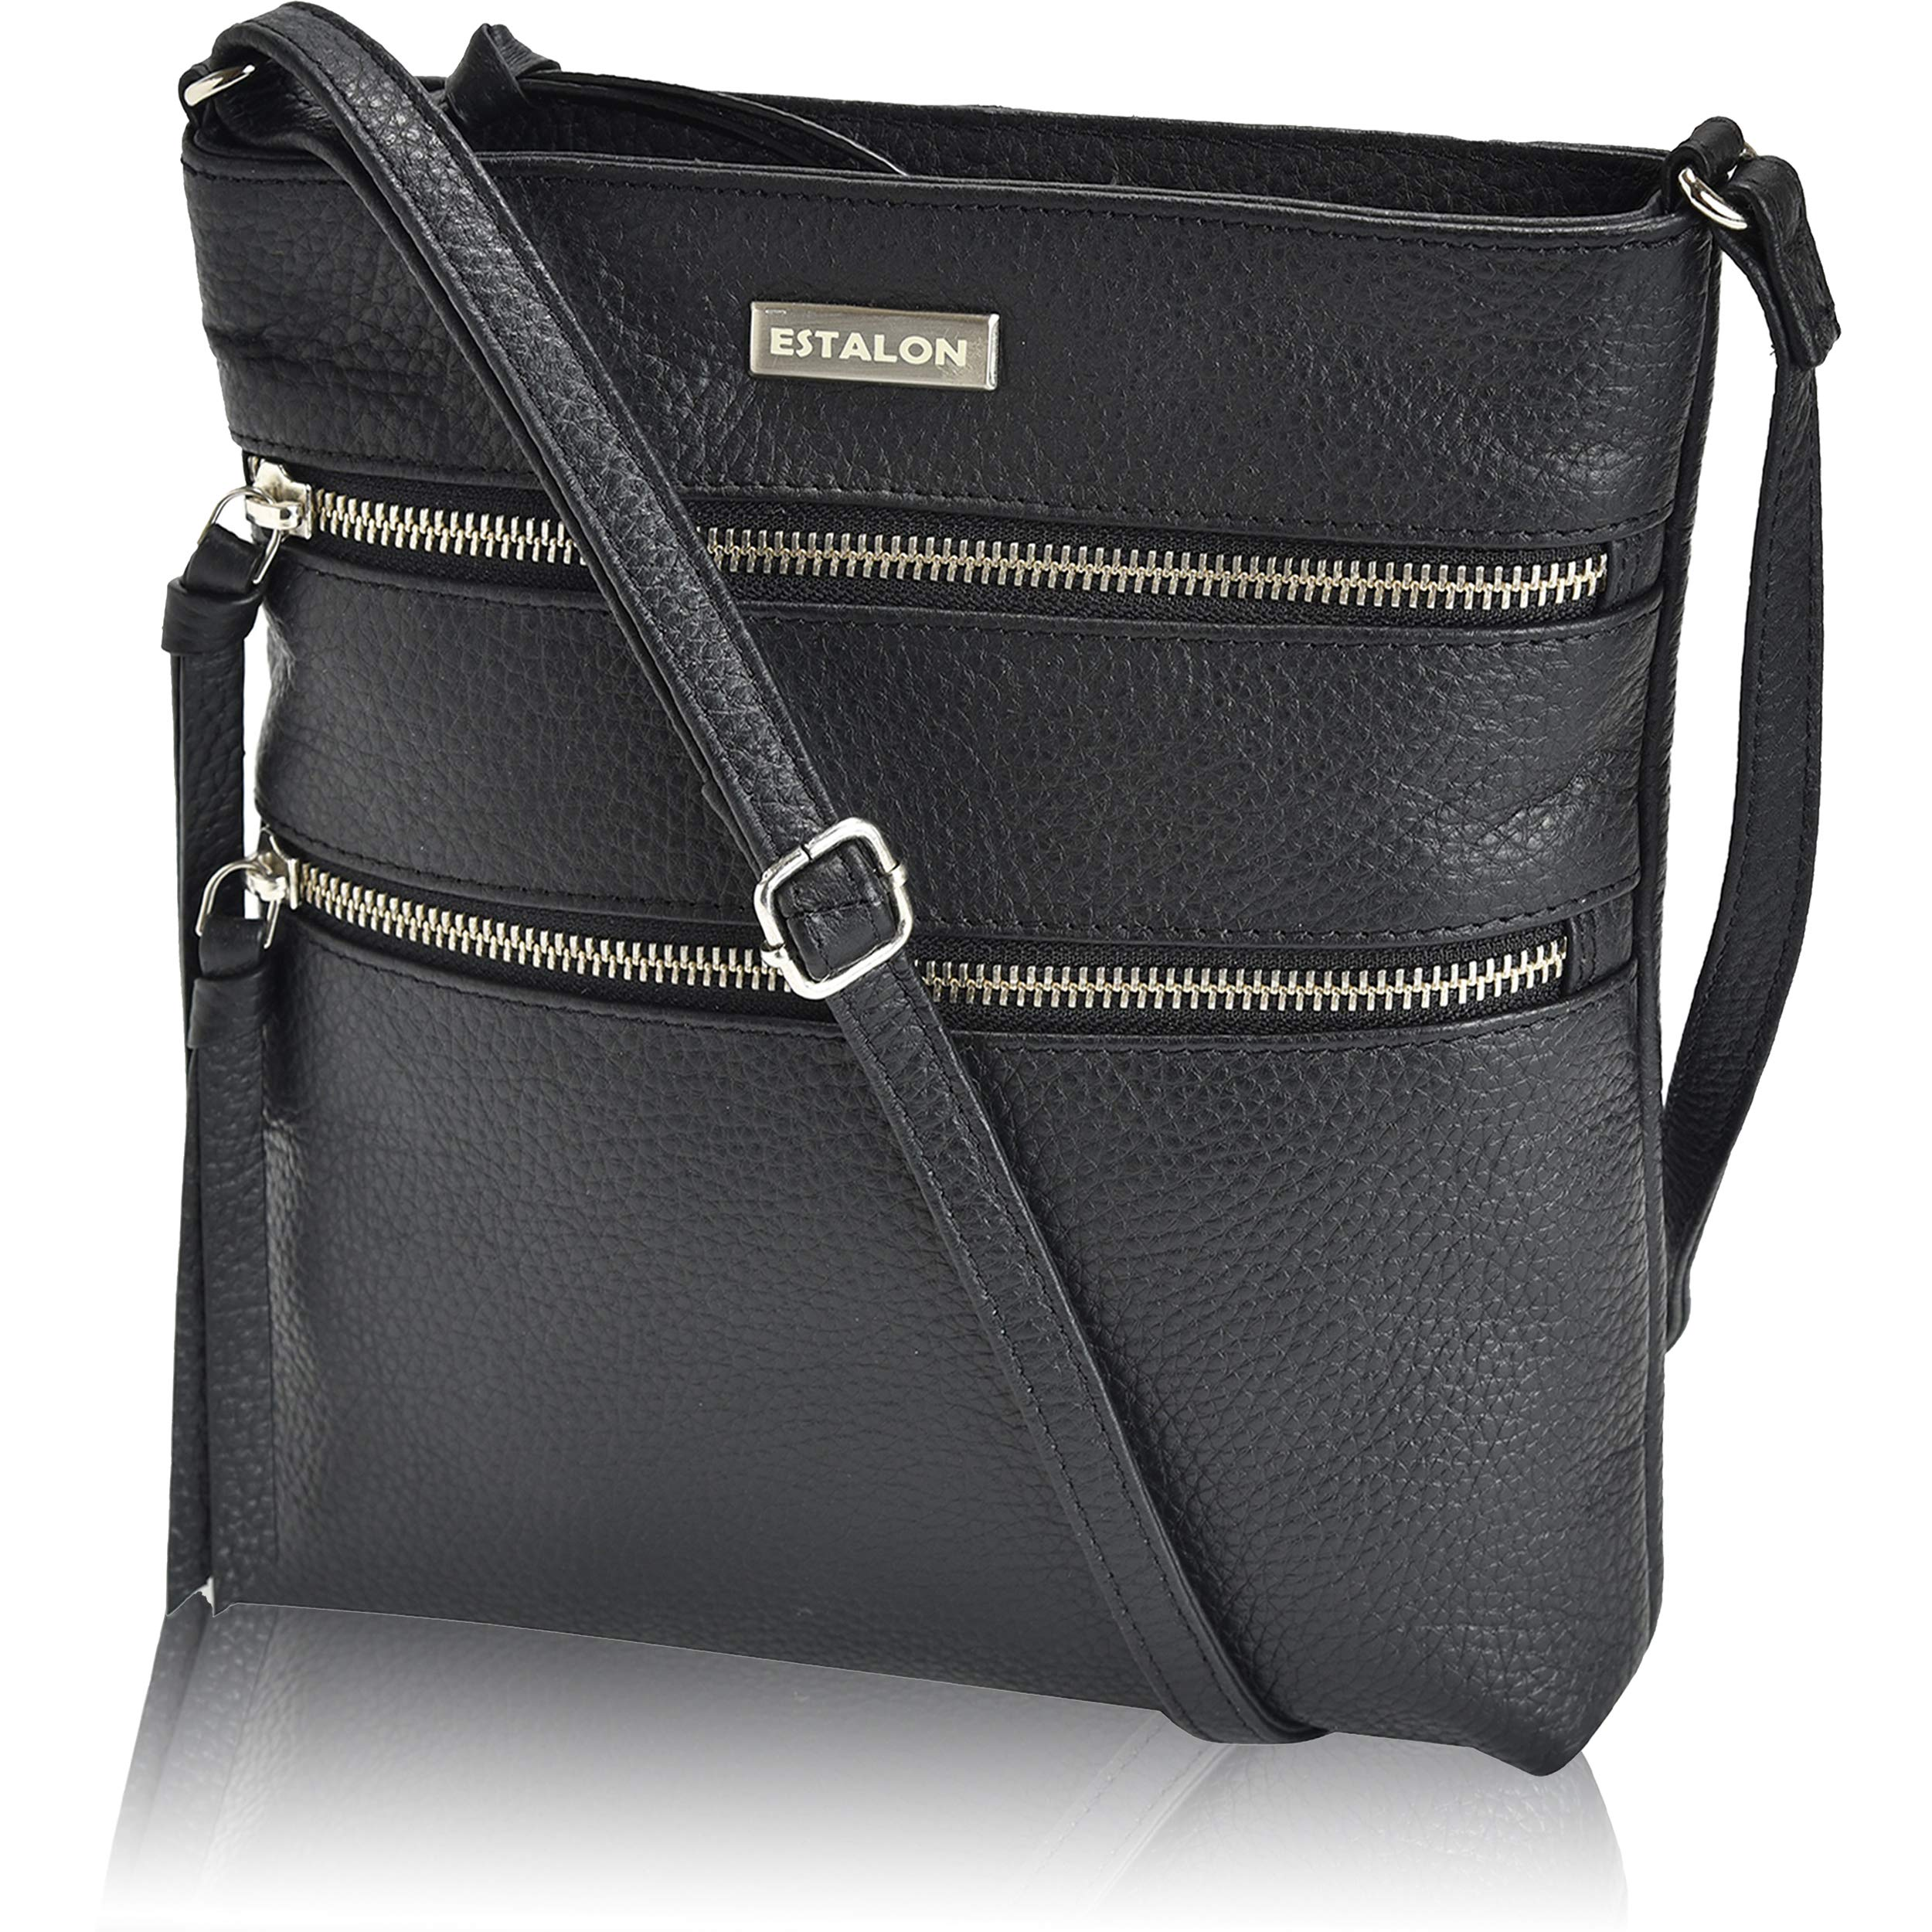 Leather Crossbody Purse for Women- Premium Crossover Cross Body Bag Over the Shoulder Luxury Womens Purses and Handbags (Black Pebble)